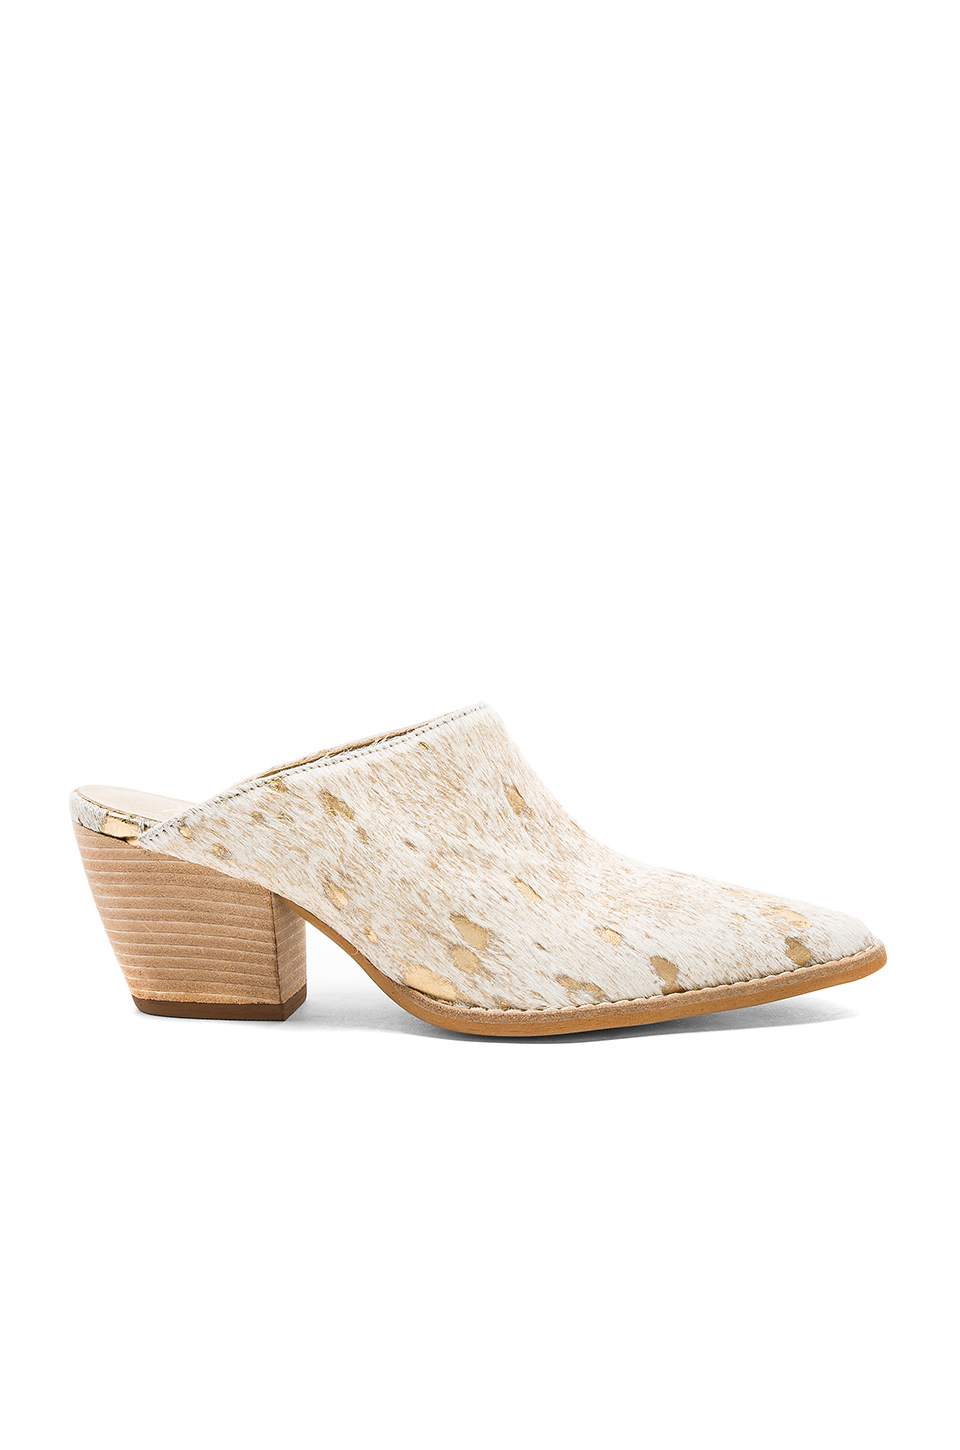 Matisse Cammy Cow Hair Heel in Ivory